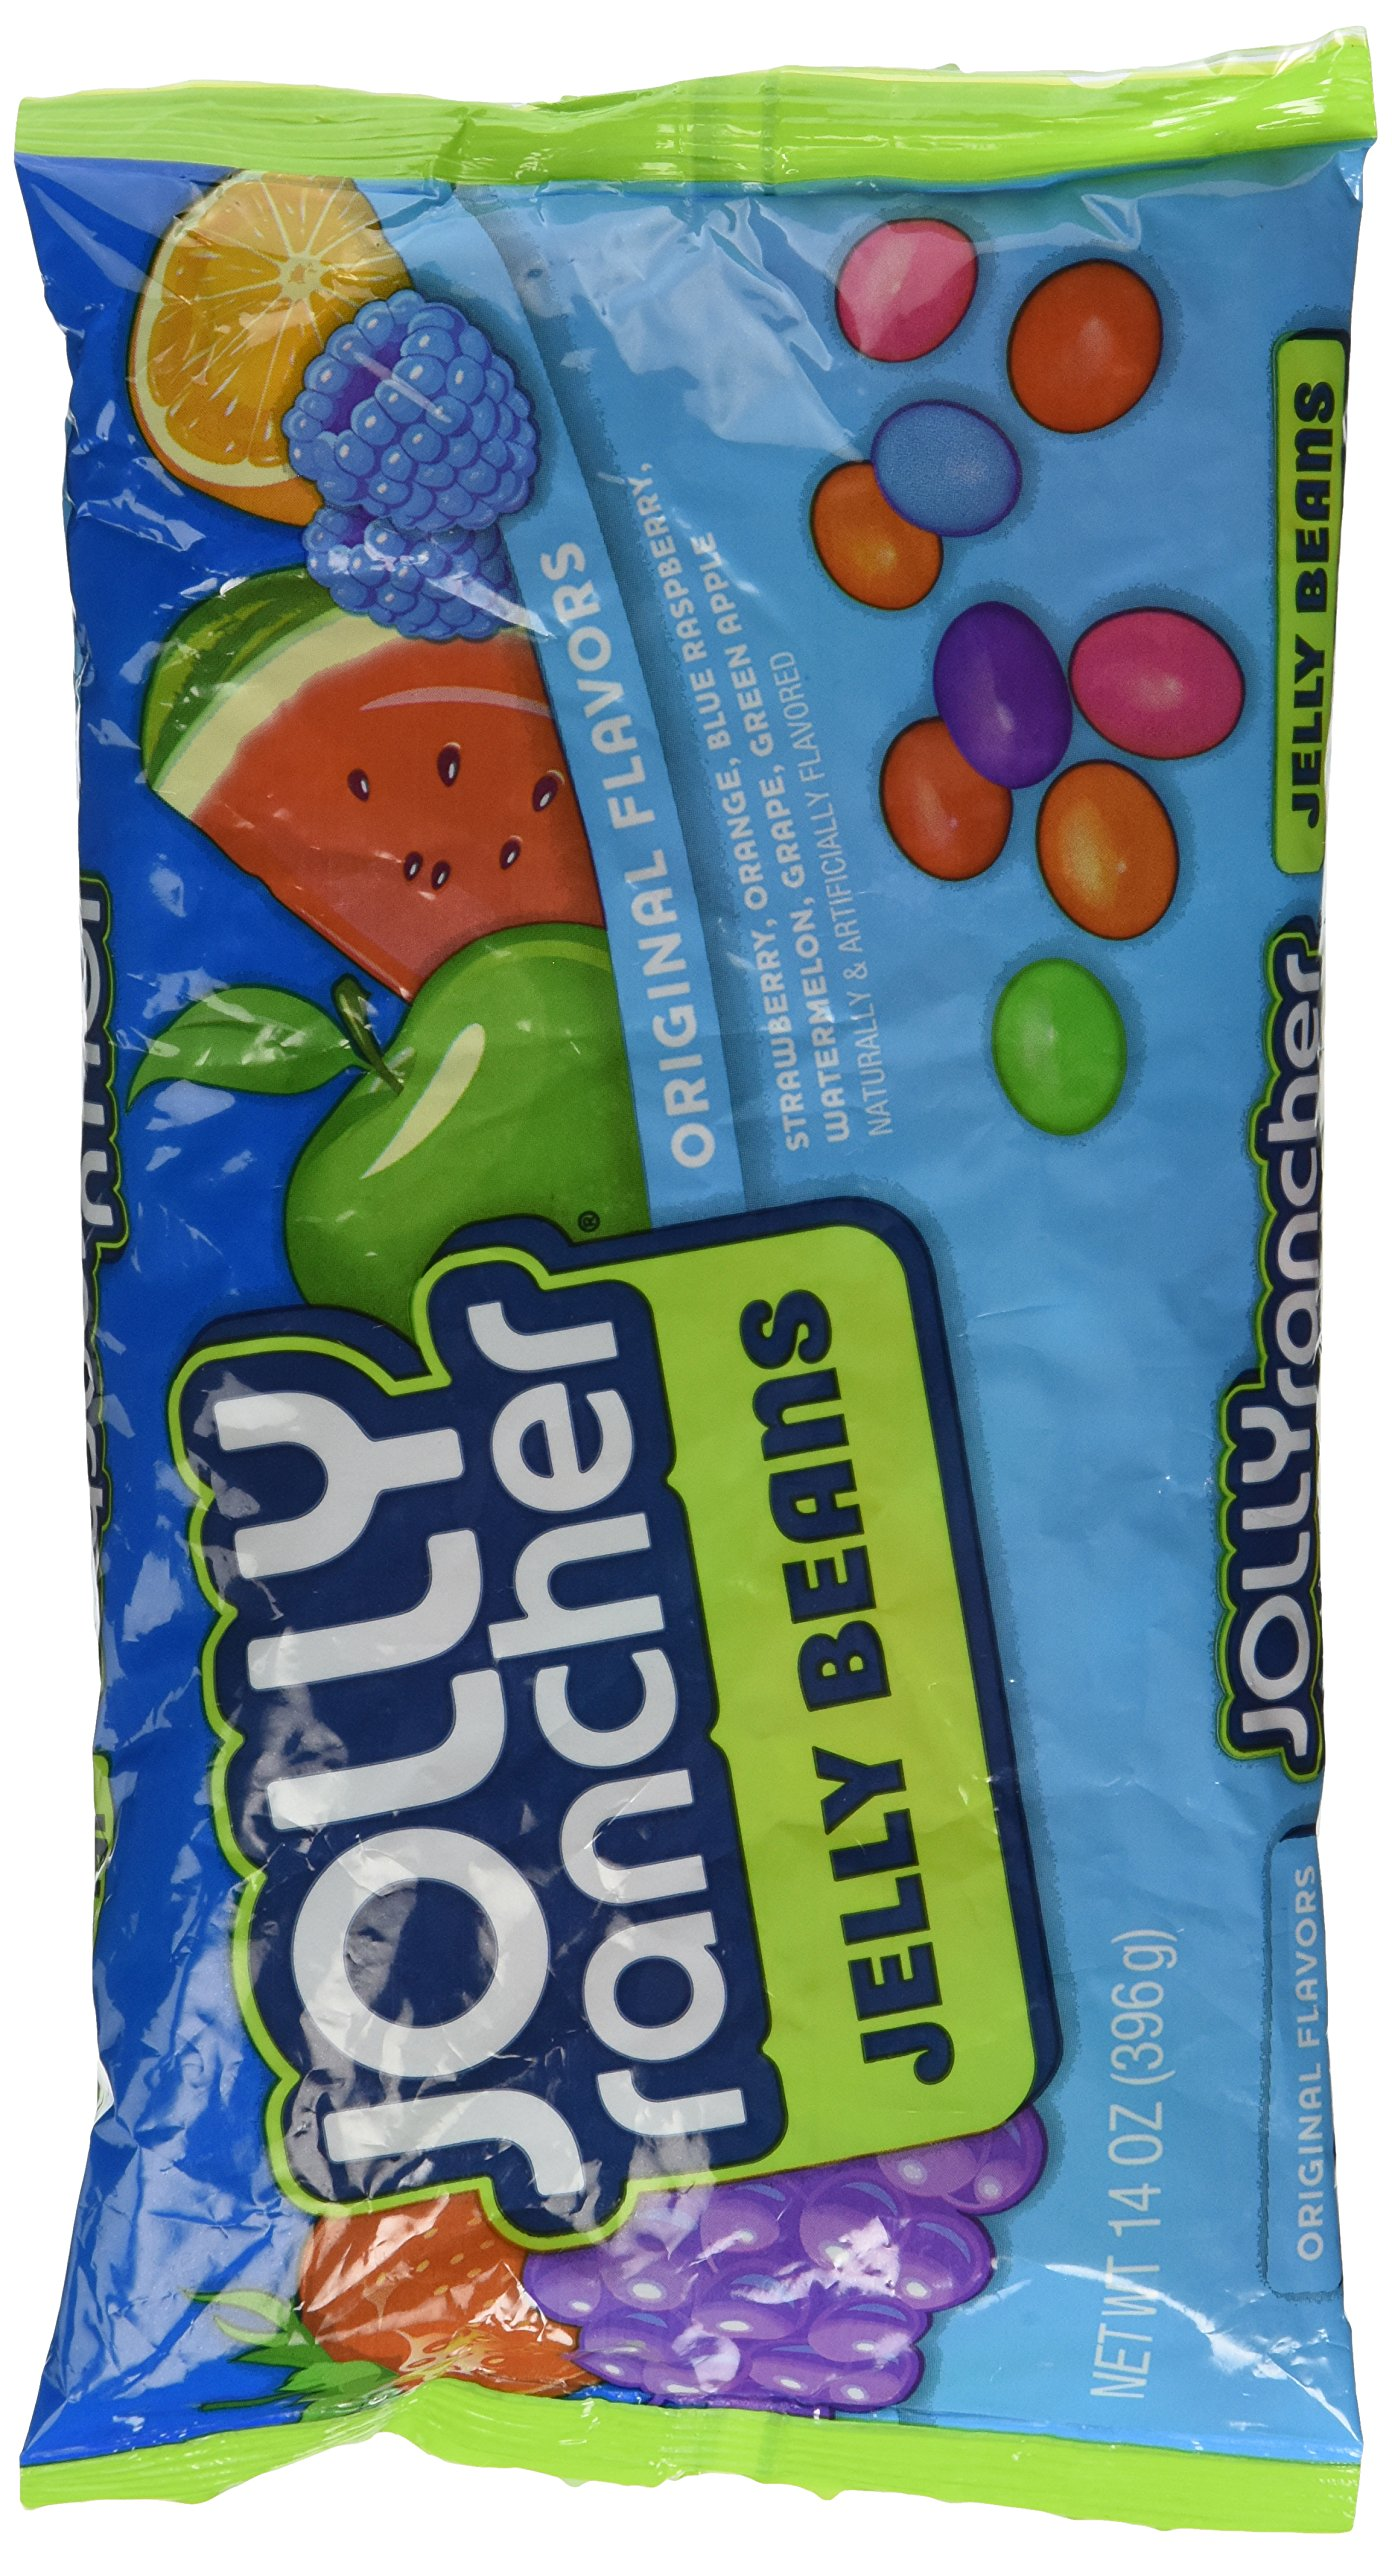 Jolly Rancher Jelly Beans, 14-Ounce Bag (Pack of 6) by Jolly Rancher